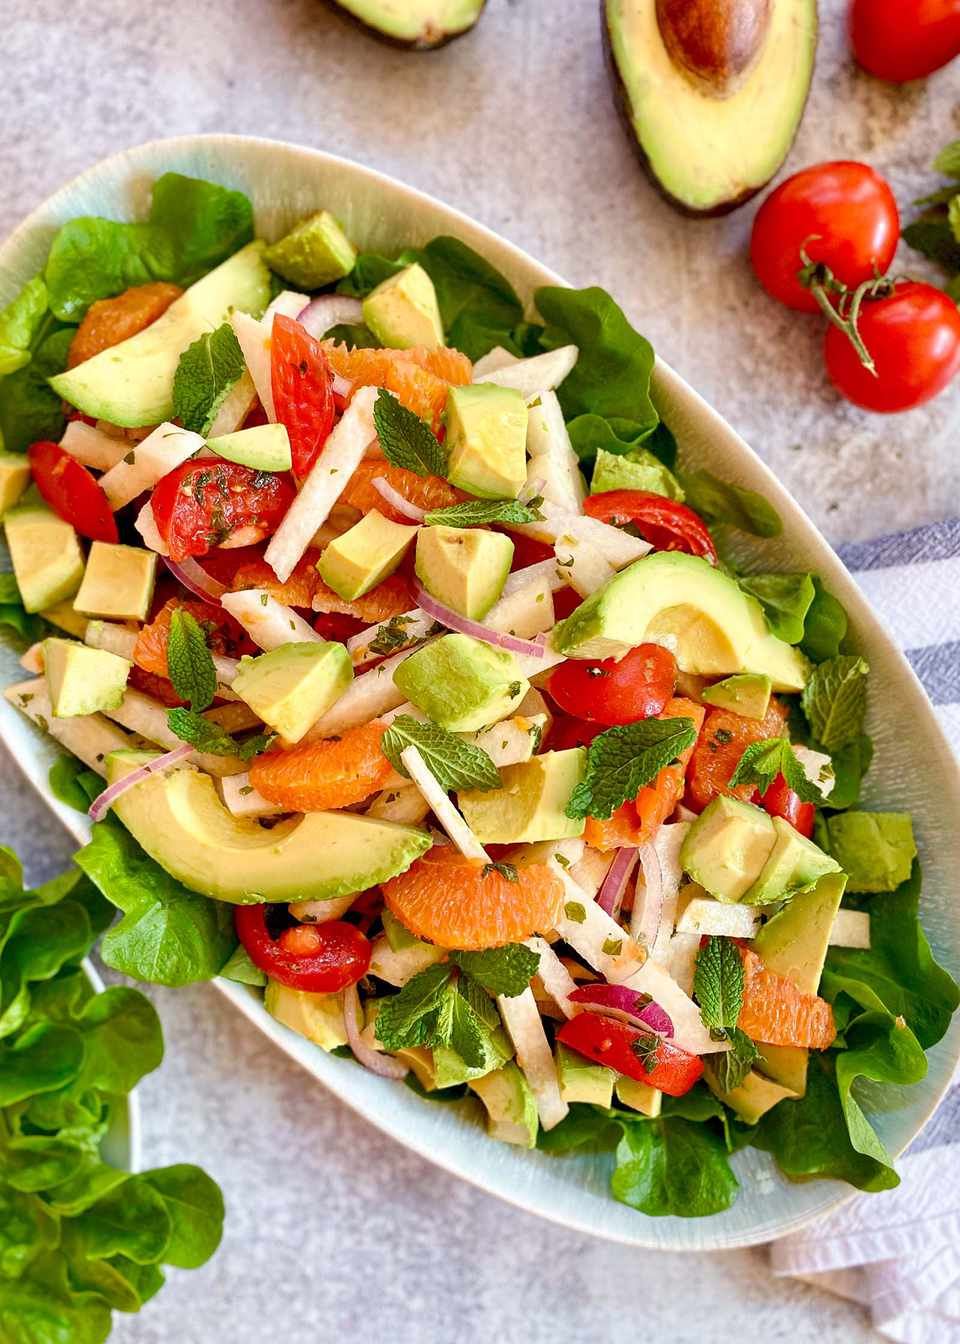 Quick and Easy Lunch Salad over a bed of lettuce. The oval serving bowl is filled with a salad of avocado, tomatoes, oranges, mint, red onion and jicama.